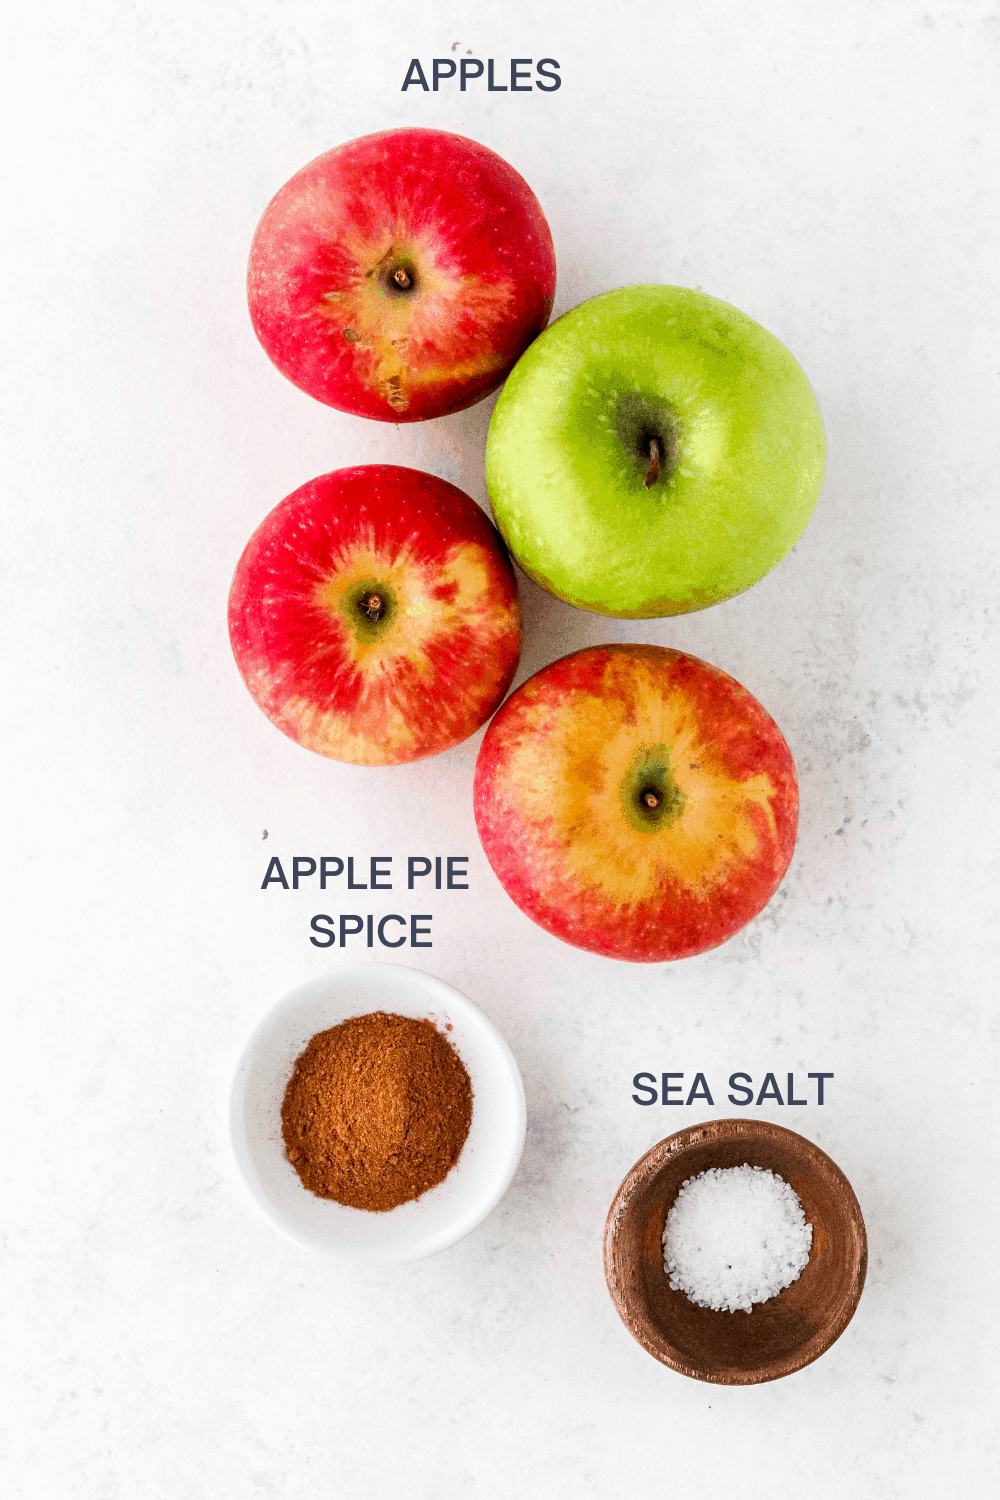 3 red apples and 1 green apple on a white surface with a small white bowl of apple pie spice and a brown bowl filled with sea salt in front of it.